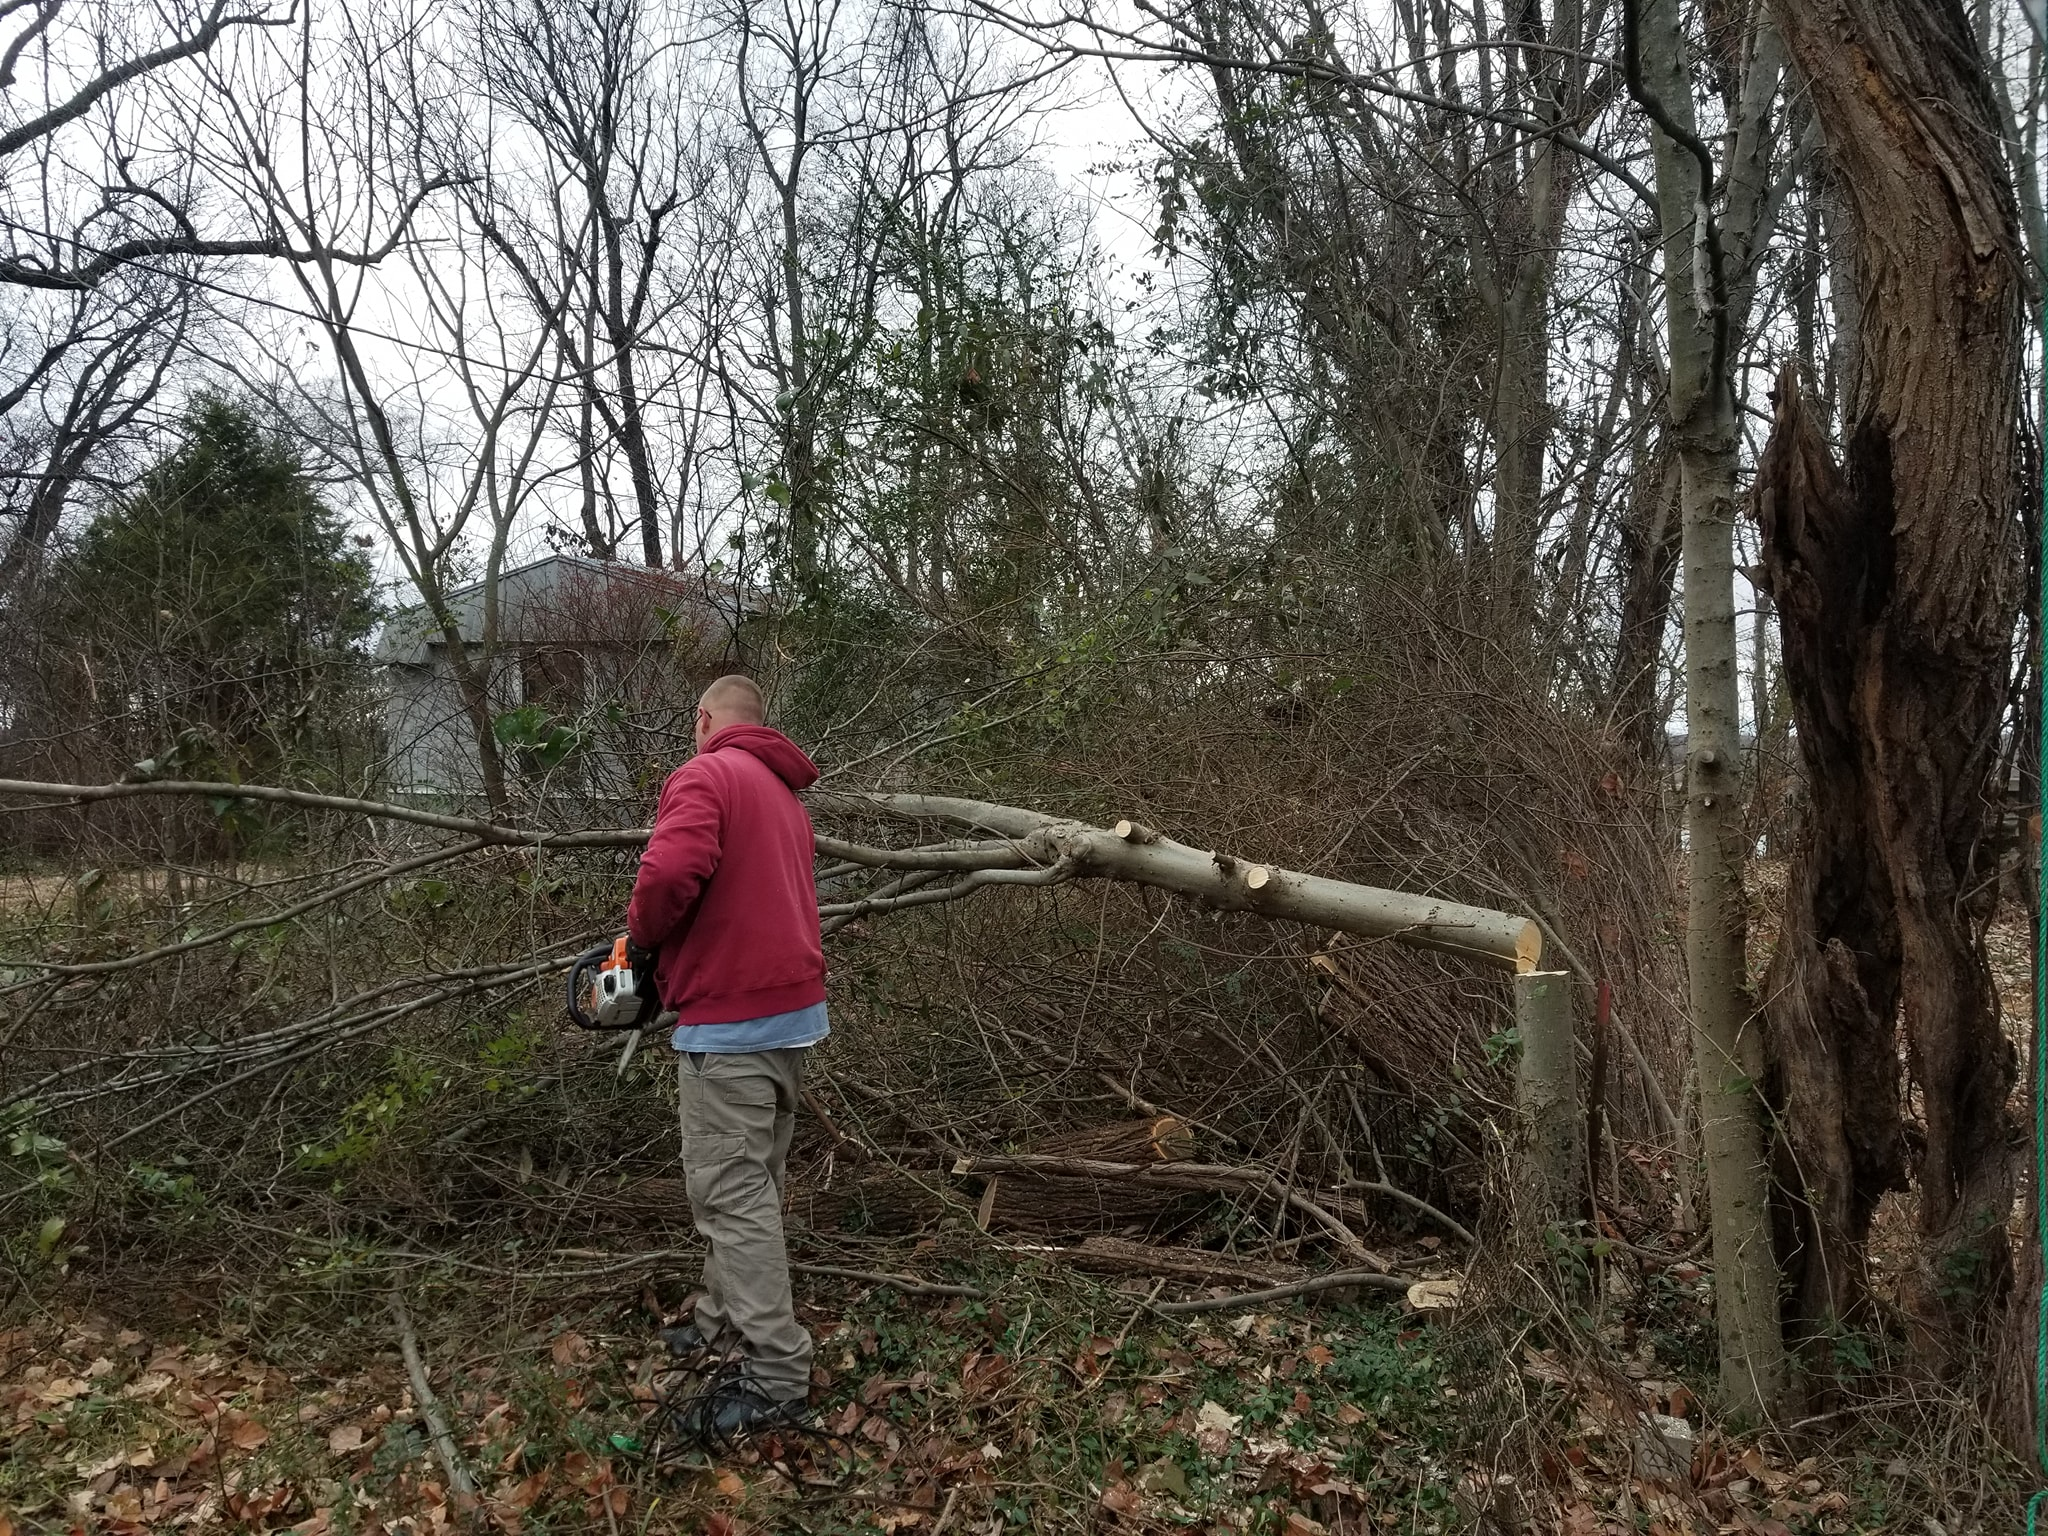 Tree Removal Service Paducah Ky Hicks Landscaping Services